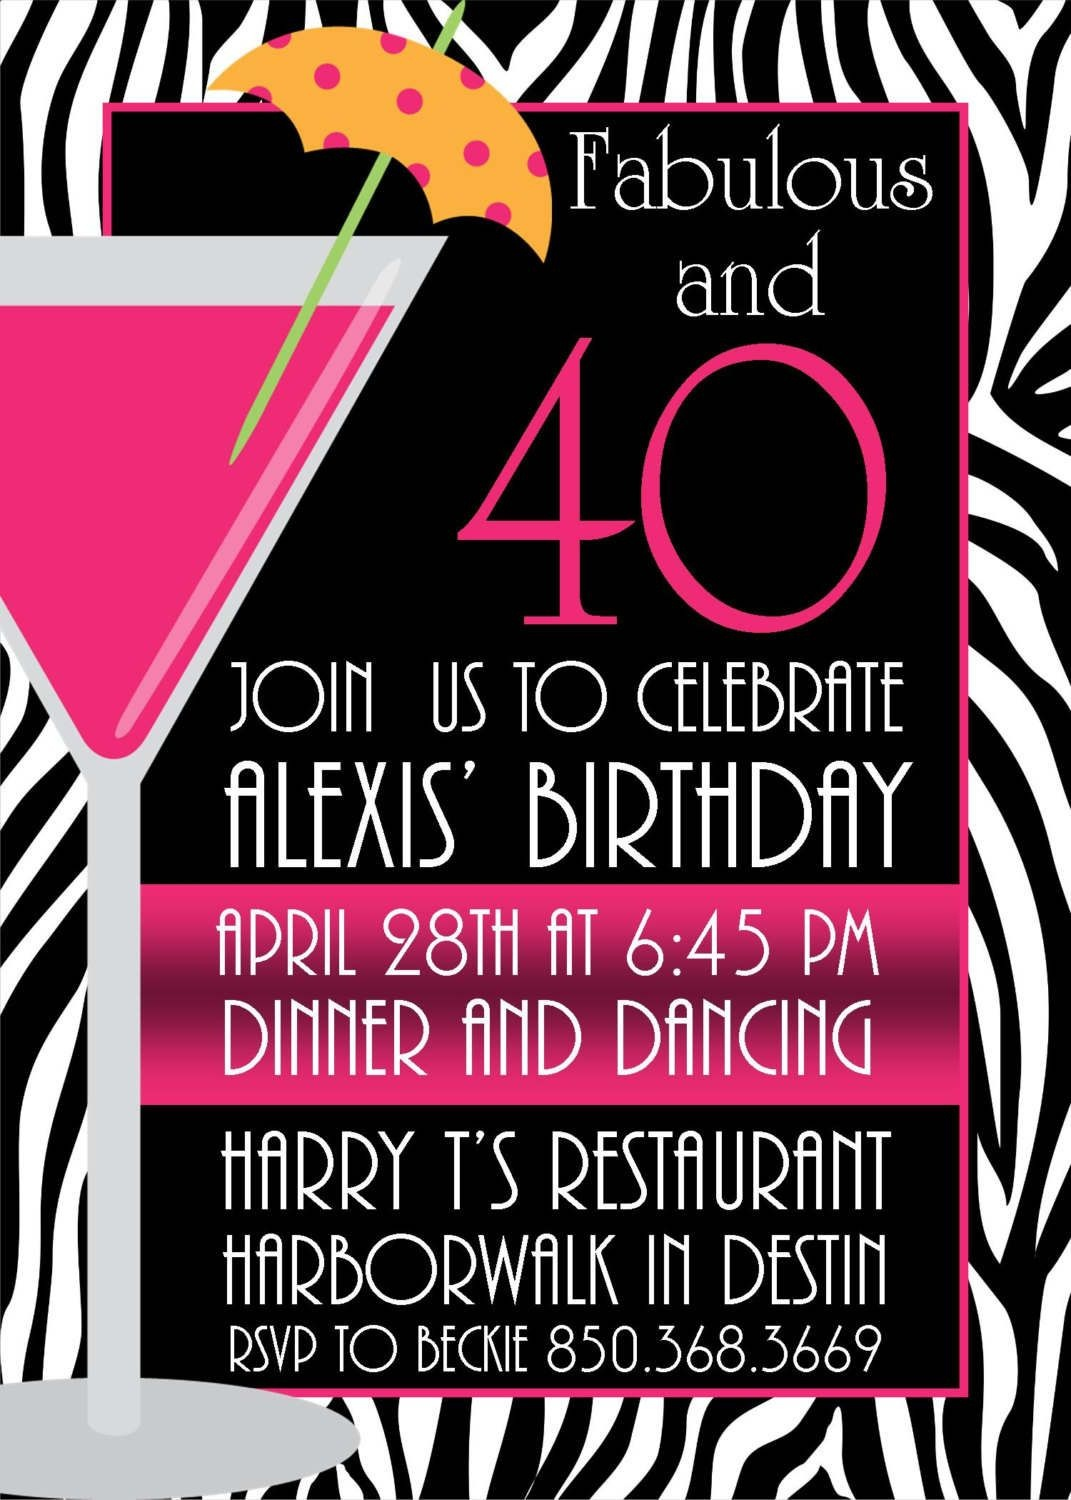 Pictures Of Stylish Women For 40Th Birthday Invitation | Free - Free Printable Surprise 40Th Birthday Party Invitations